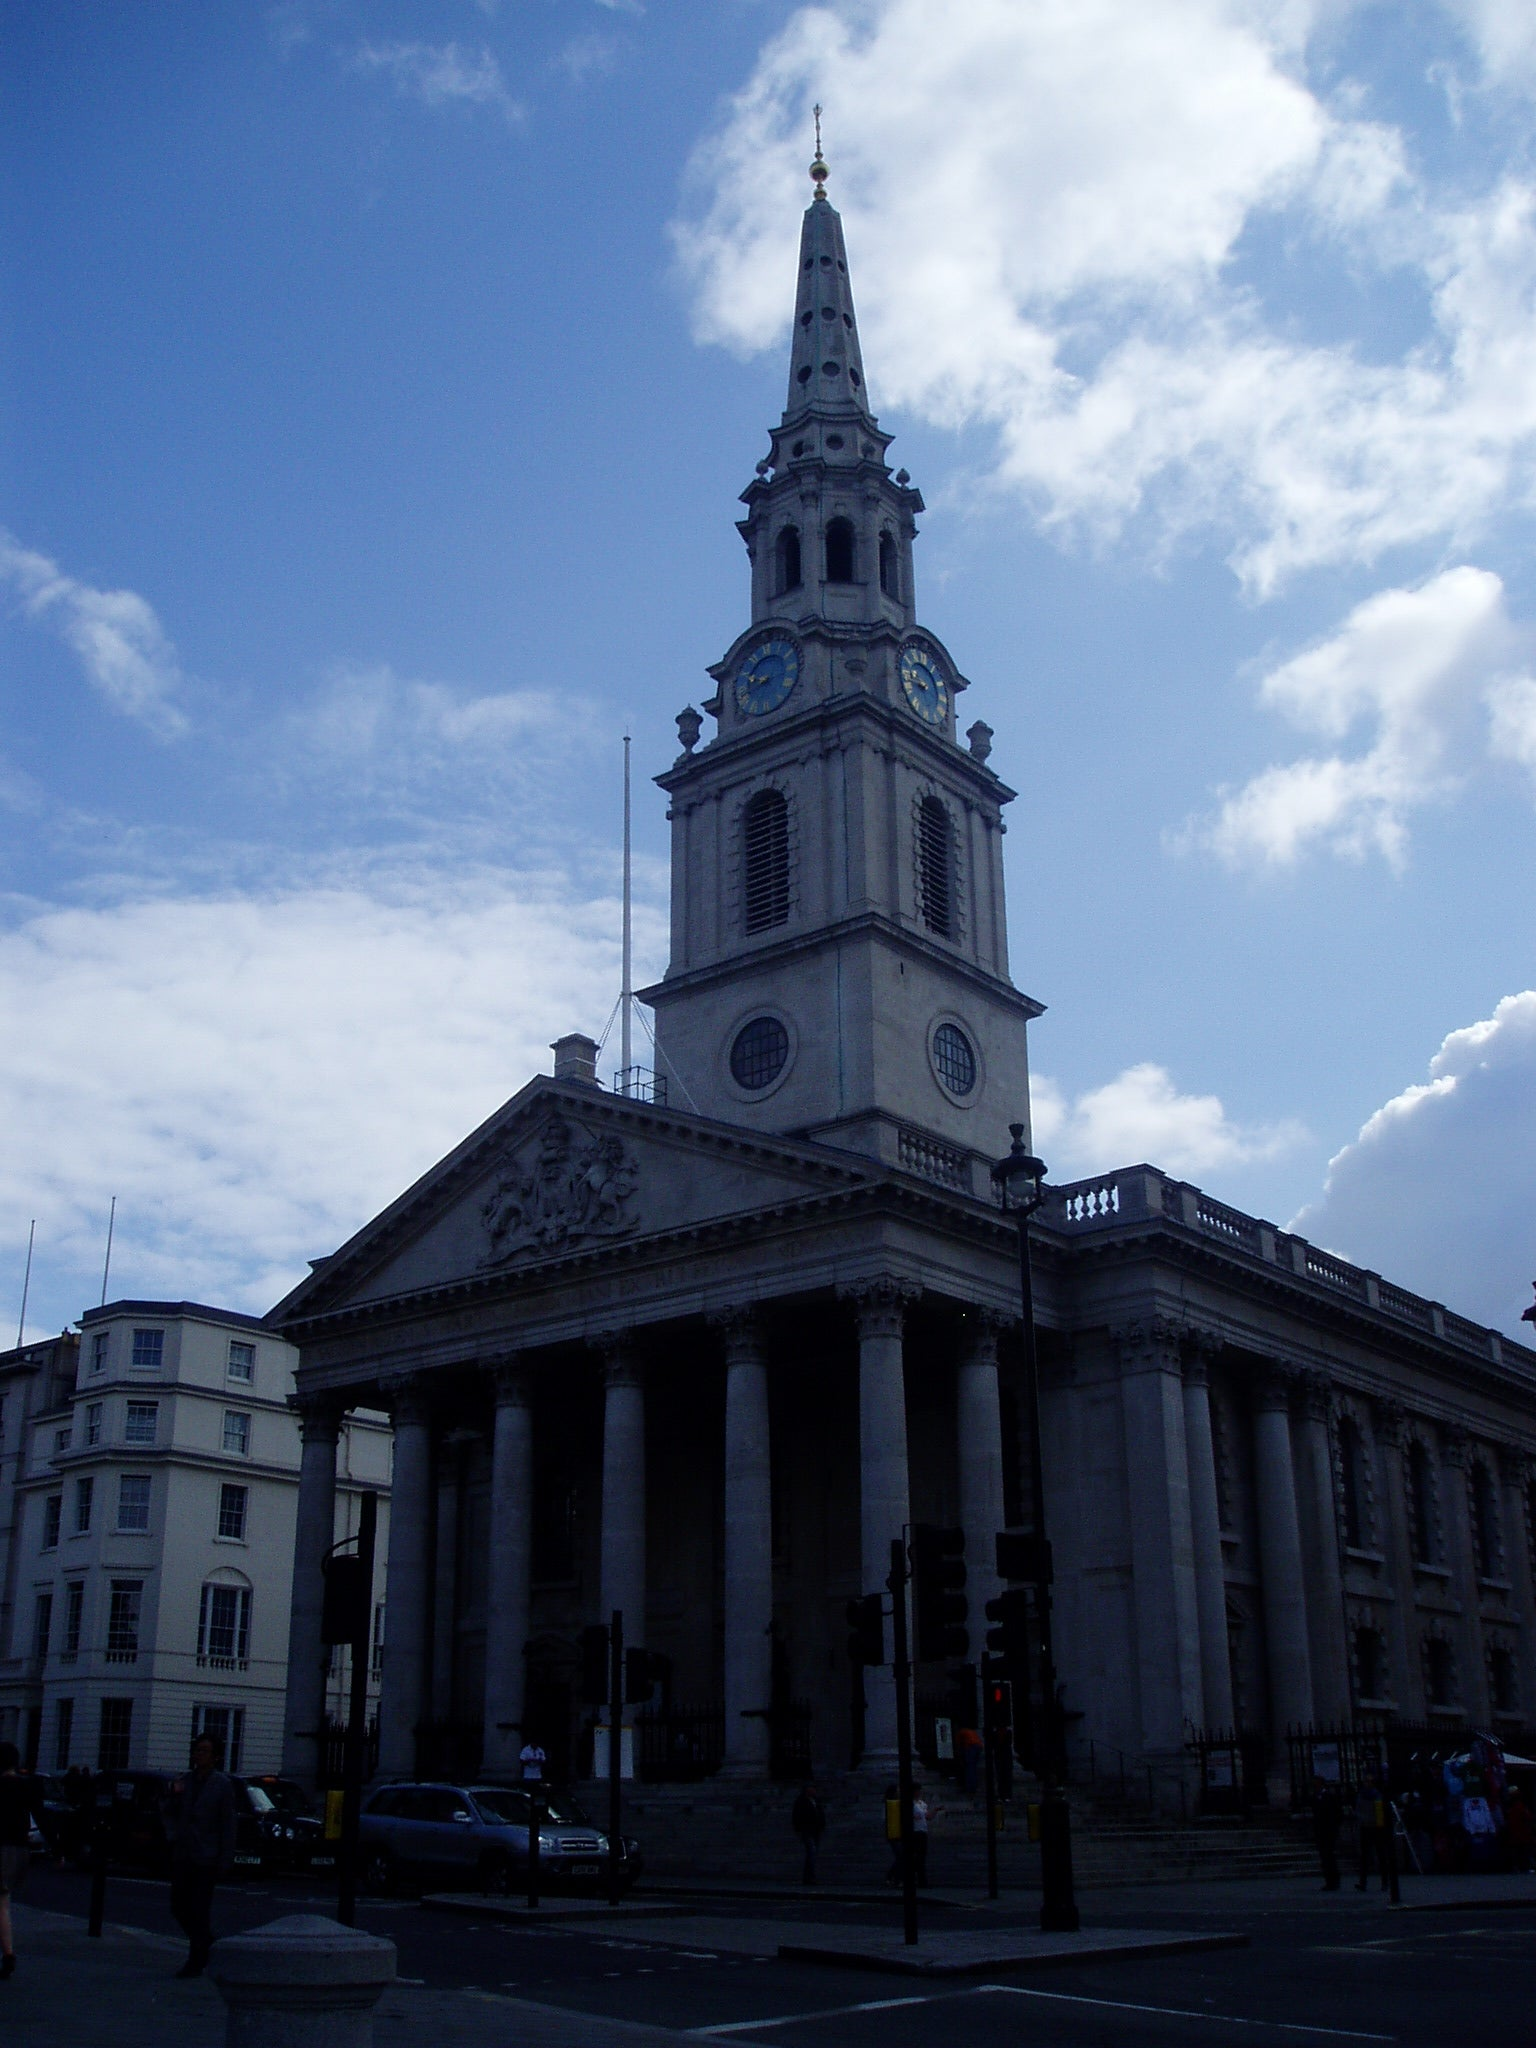 Casa en St Martin-in-the-Fields